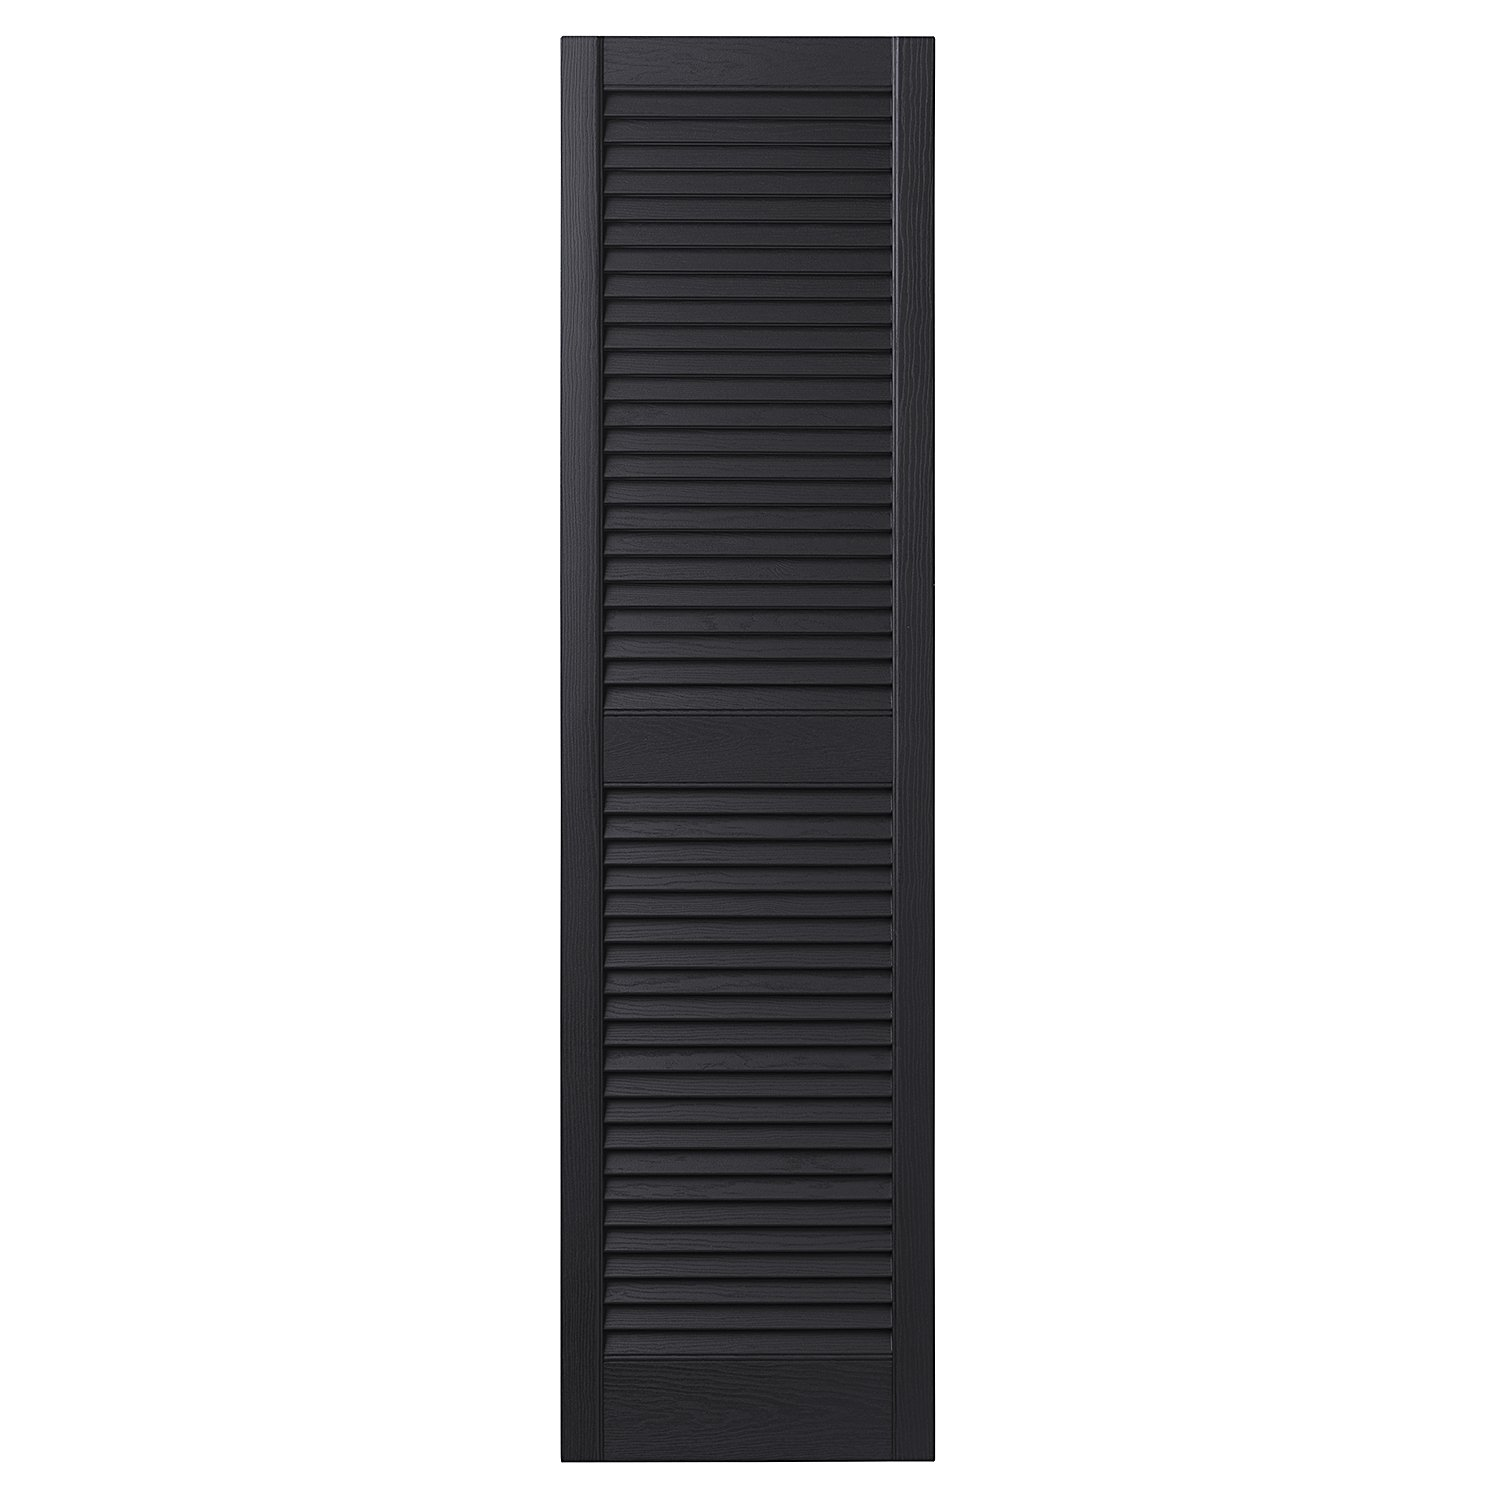 Ply Gem Shutters and Accents VINLV1547 33 Louvered Shutter, 15'', Black